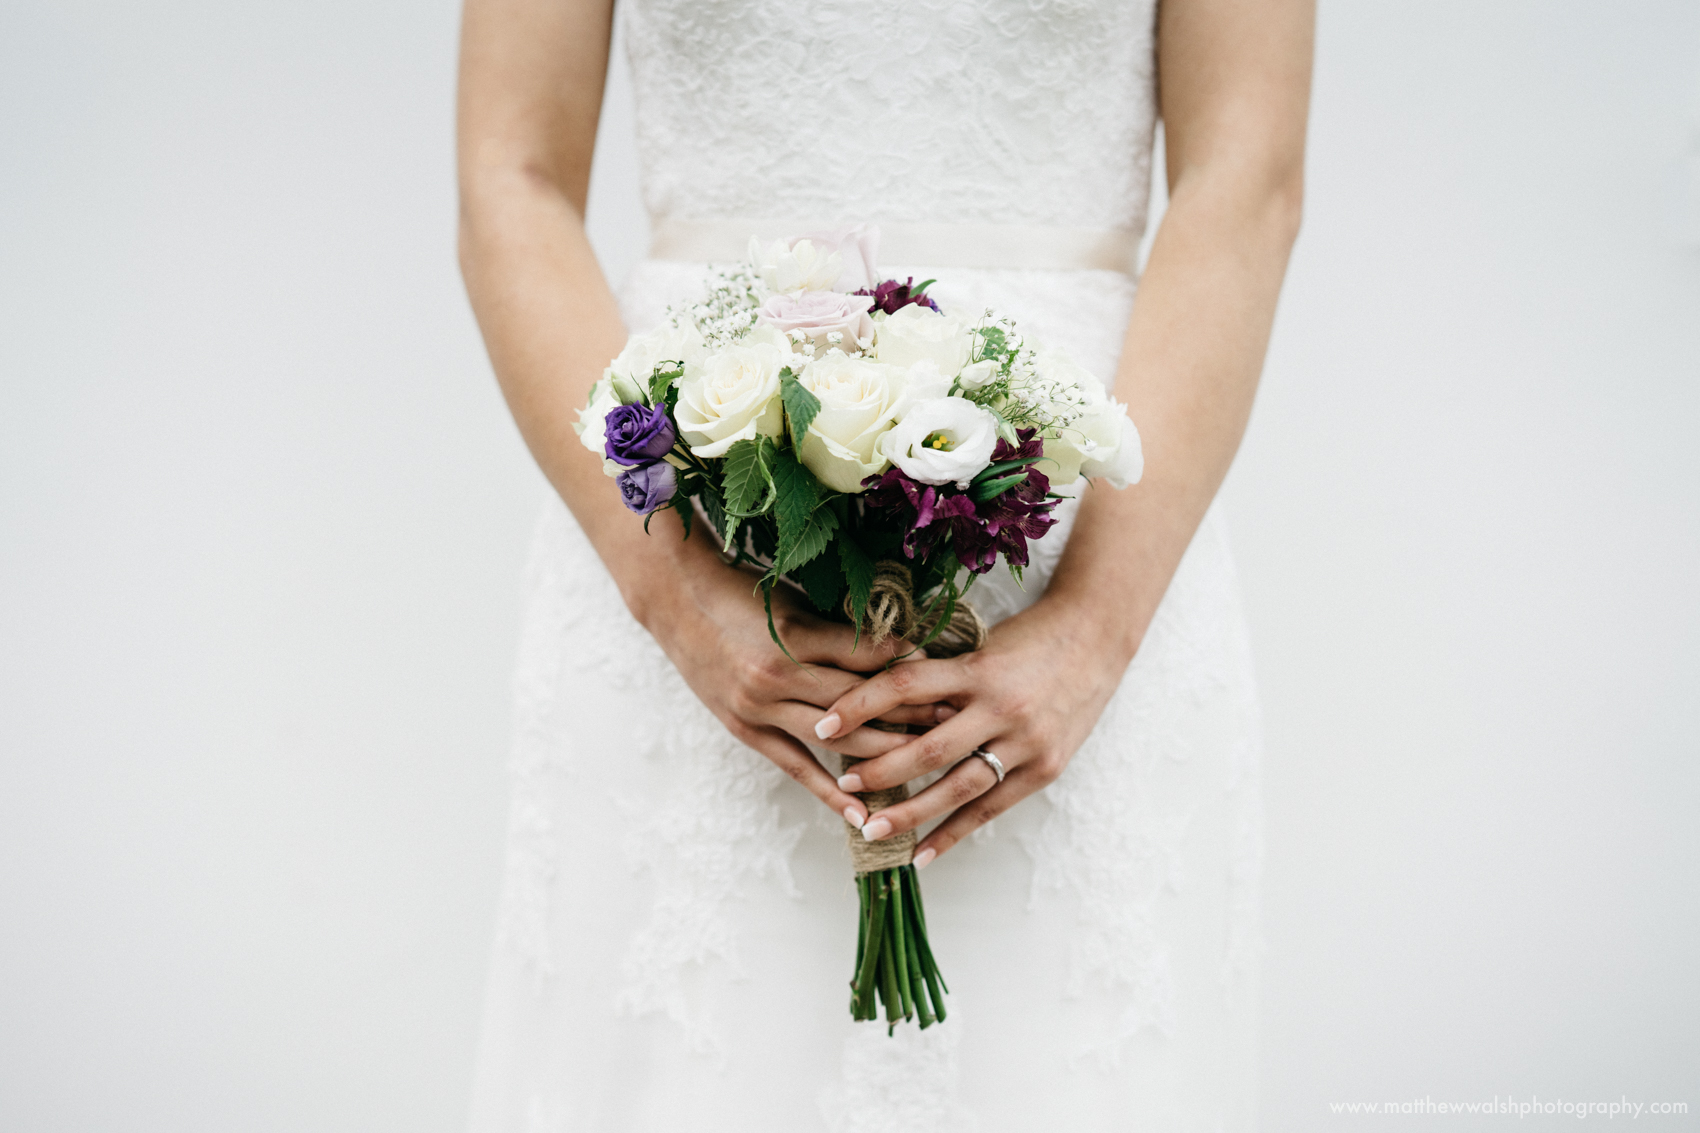 A Detail Of the brides Bouquet